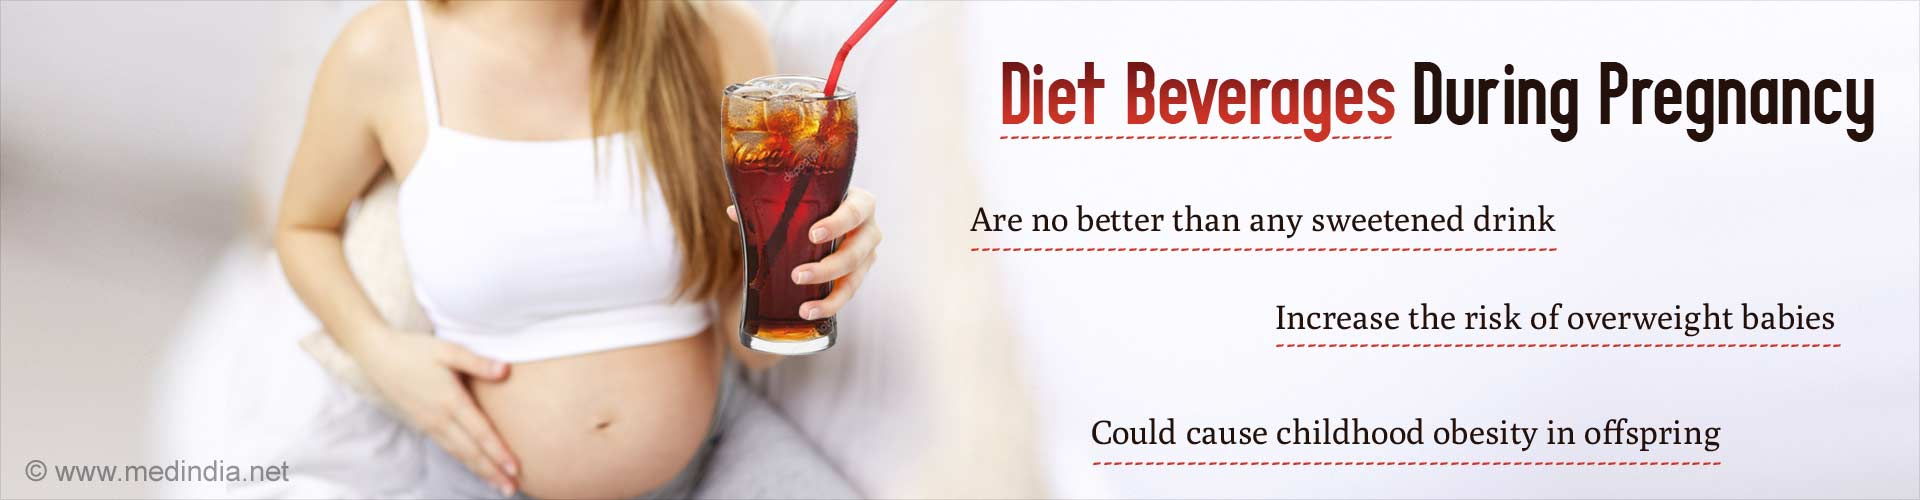 Are You Pregnant? Avoid Diet Drinks to Lower Child Obesity Risk